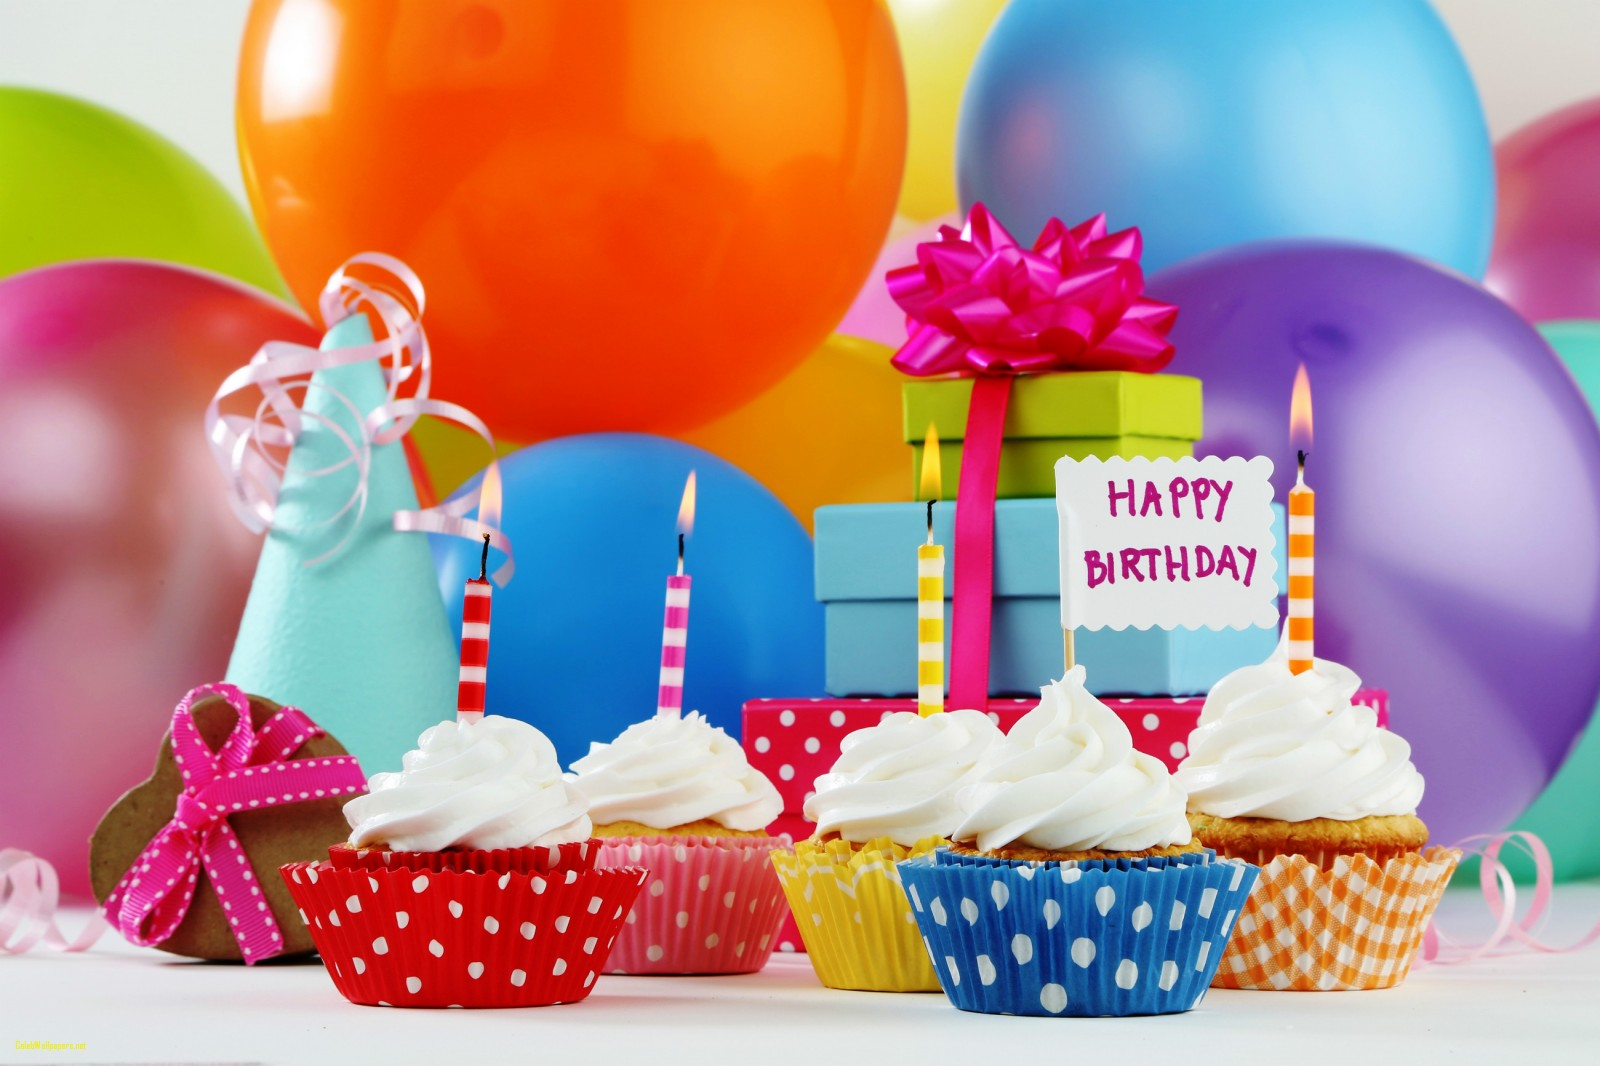 happy bday image download ; happy-bday-images-happy-birthday-balloons-hd-free-download-of-happy-bday-images